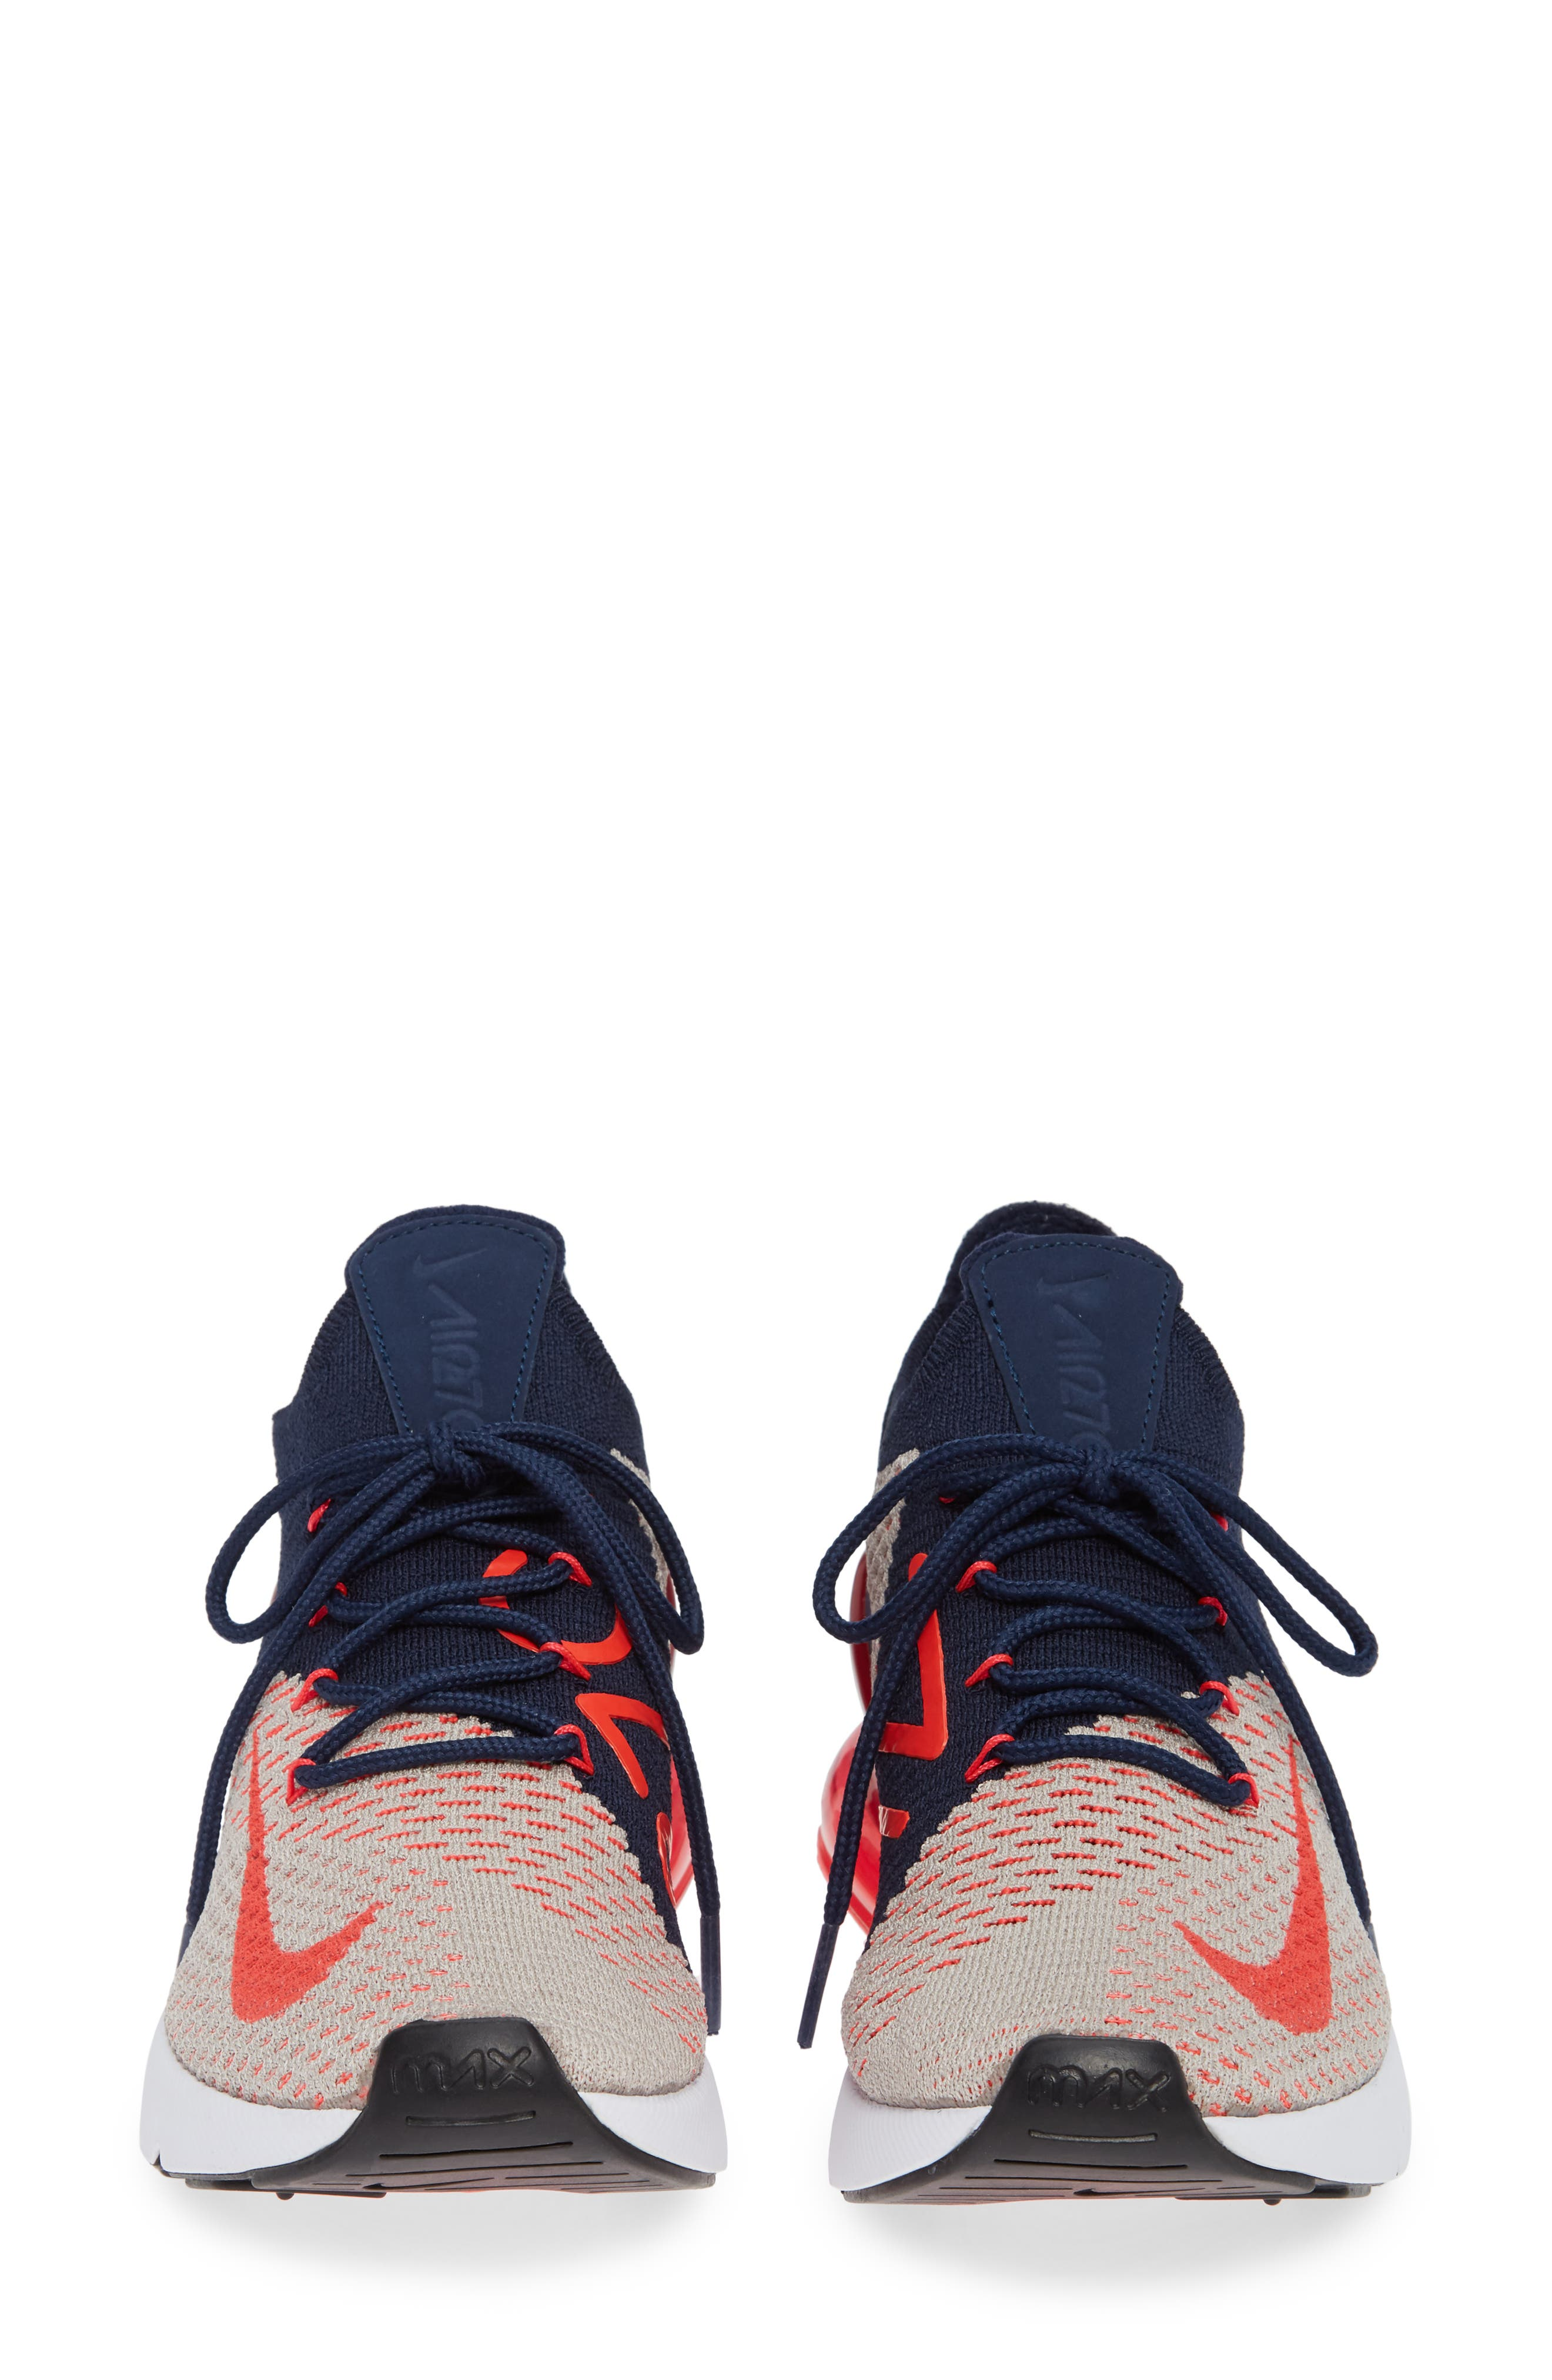 Air Max 270 Flyknit Sneaker,                             Alternate thumbnail 4, color,                             Moon Particle/ Red Orbit/ Navy